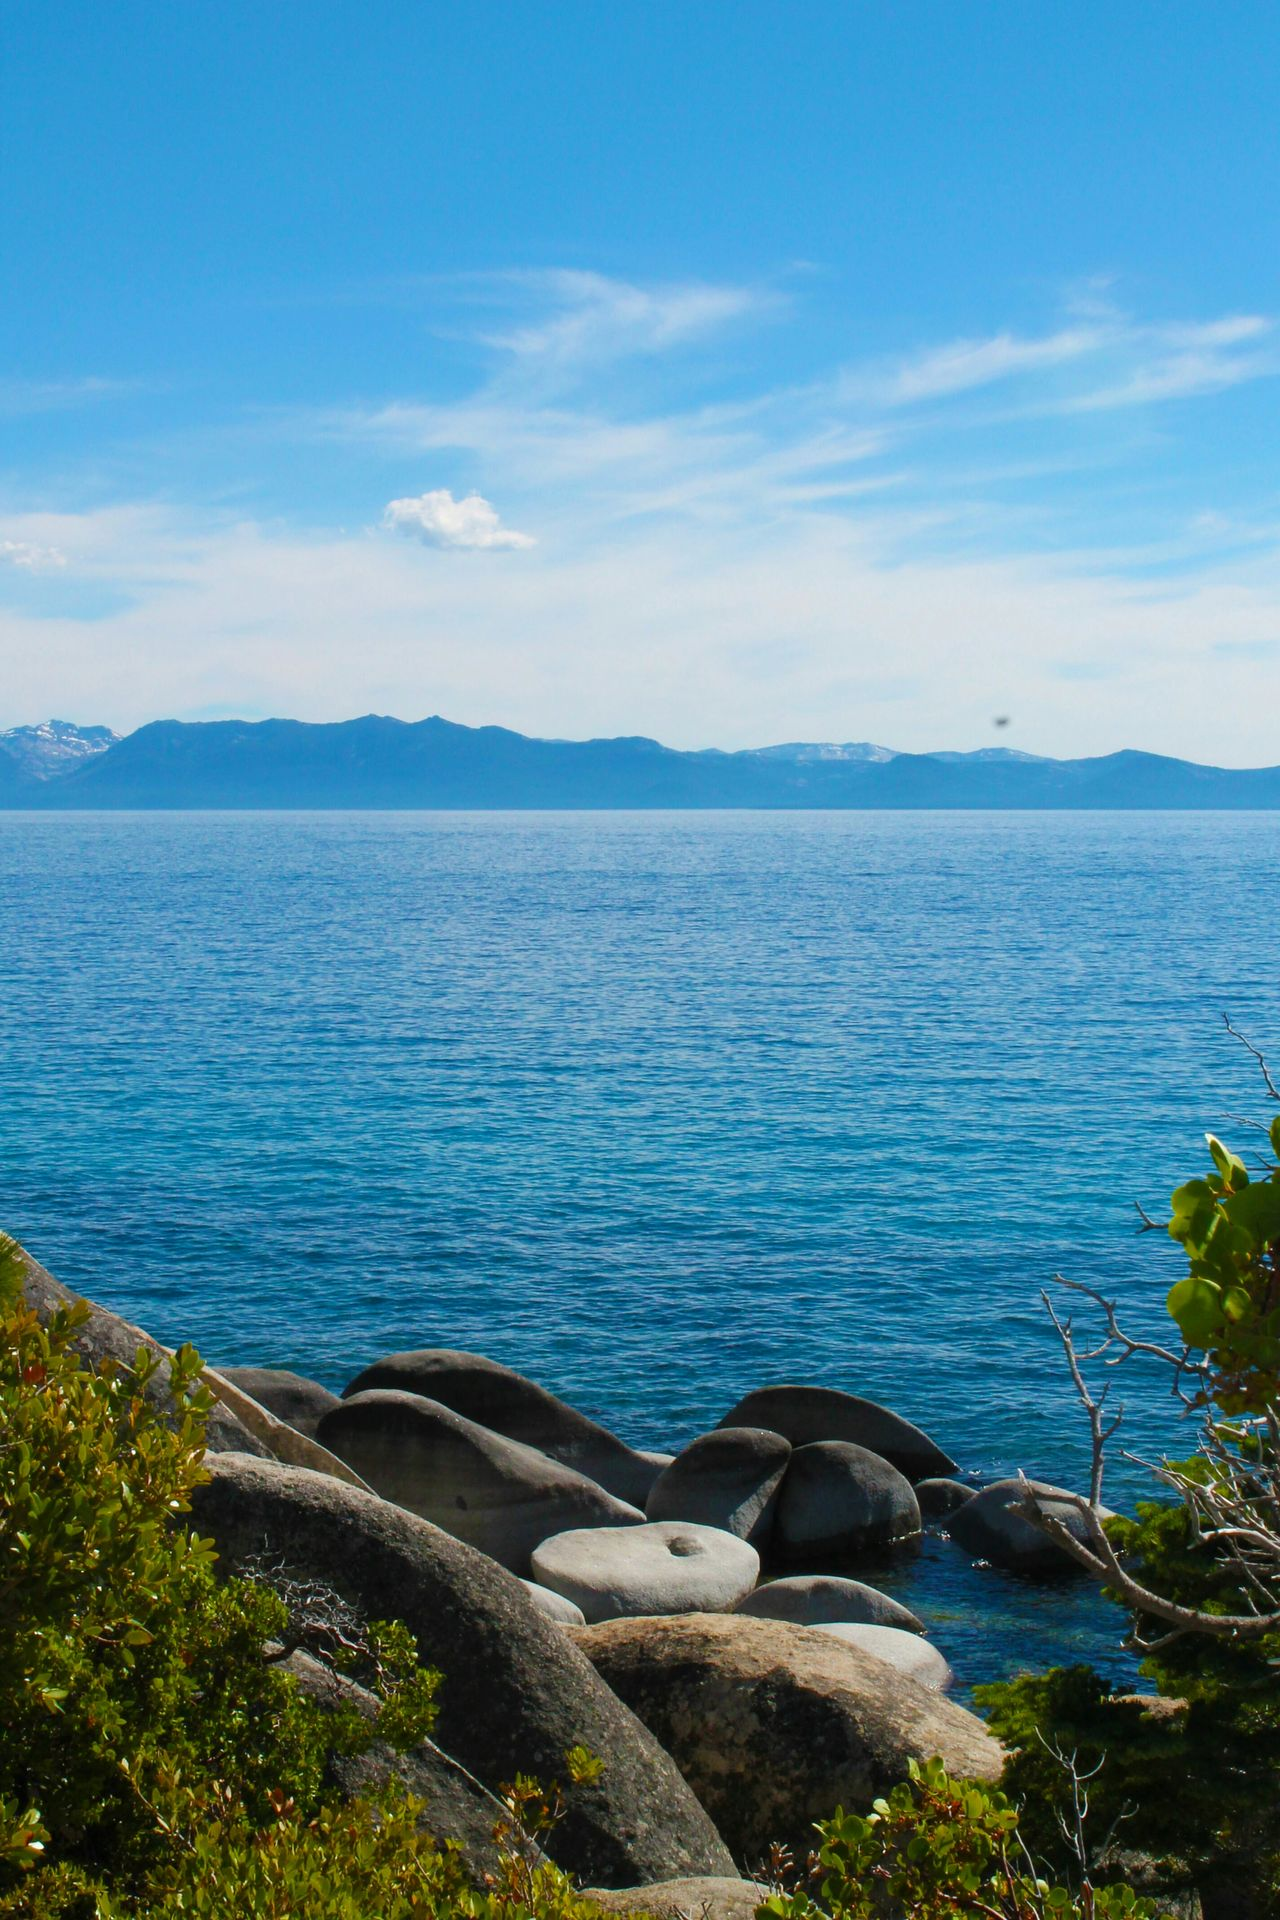 Lake Tahoe, California. Lake Landscape Mountains Sky Water Lake Tahoe California Blue Stones Rocks Flora Nature Outdoors Scenery Tranquility Travel